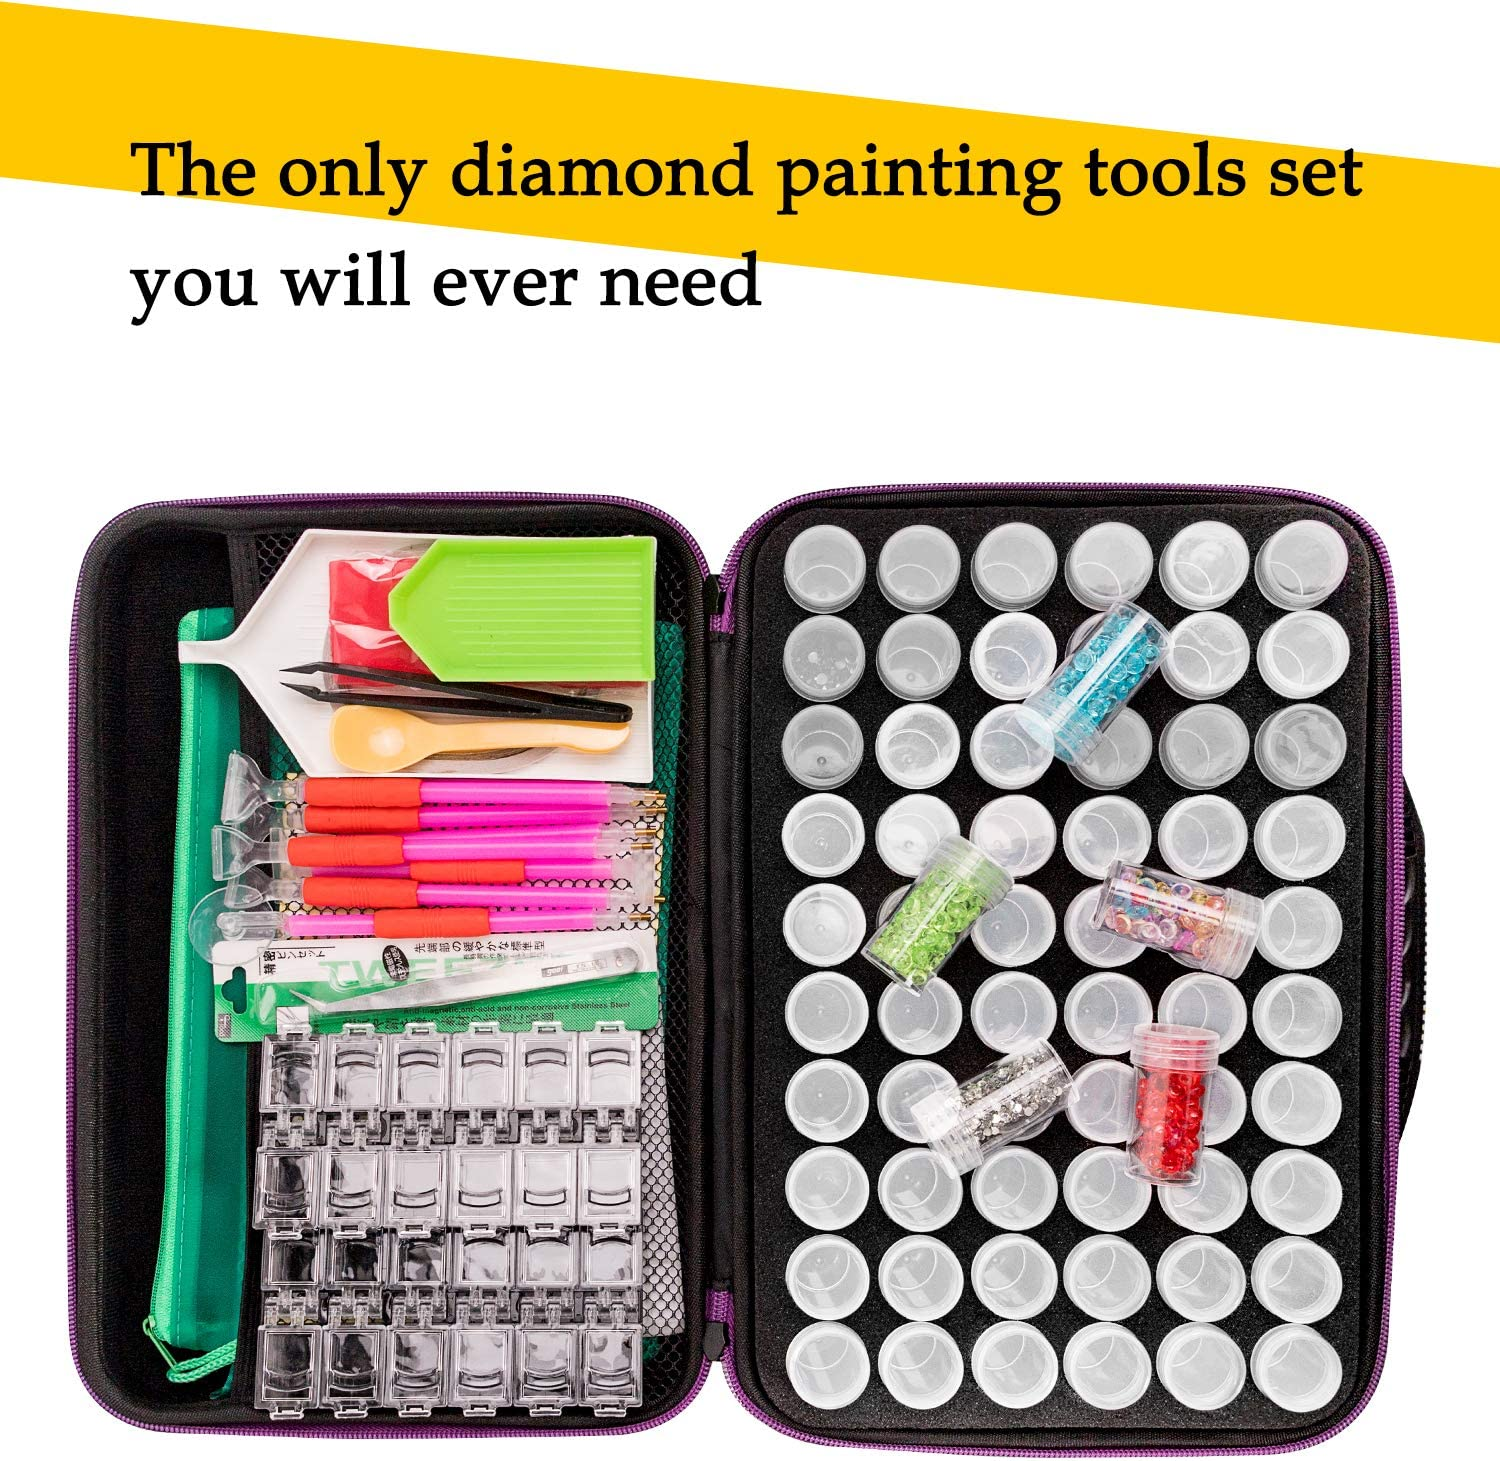 142pcs 5D Diamond Painting Tools Set Multiplacers Tweezers Boxes and More for Diamond Embroidery DIY Art Craft Straightener 60 Slots Diamond Embroidery Box Container Jars Trays Clips